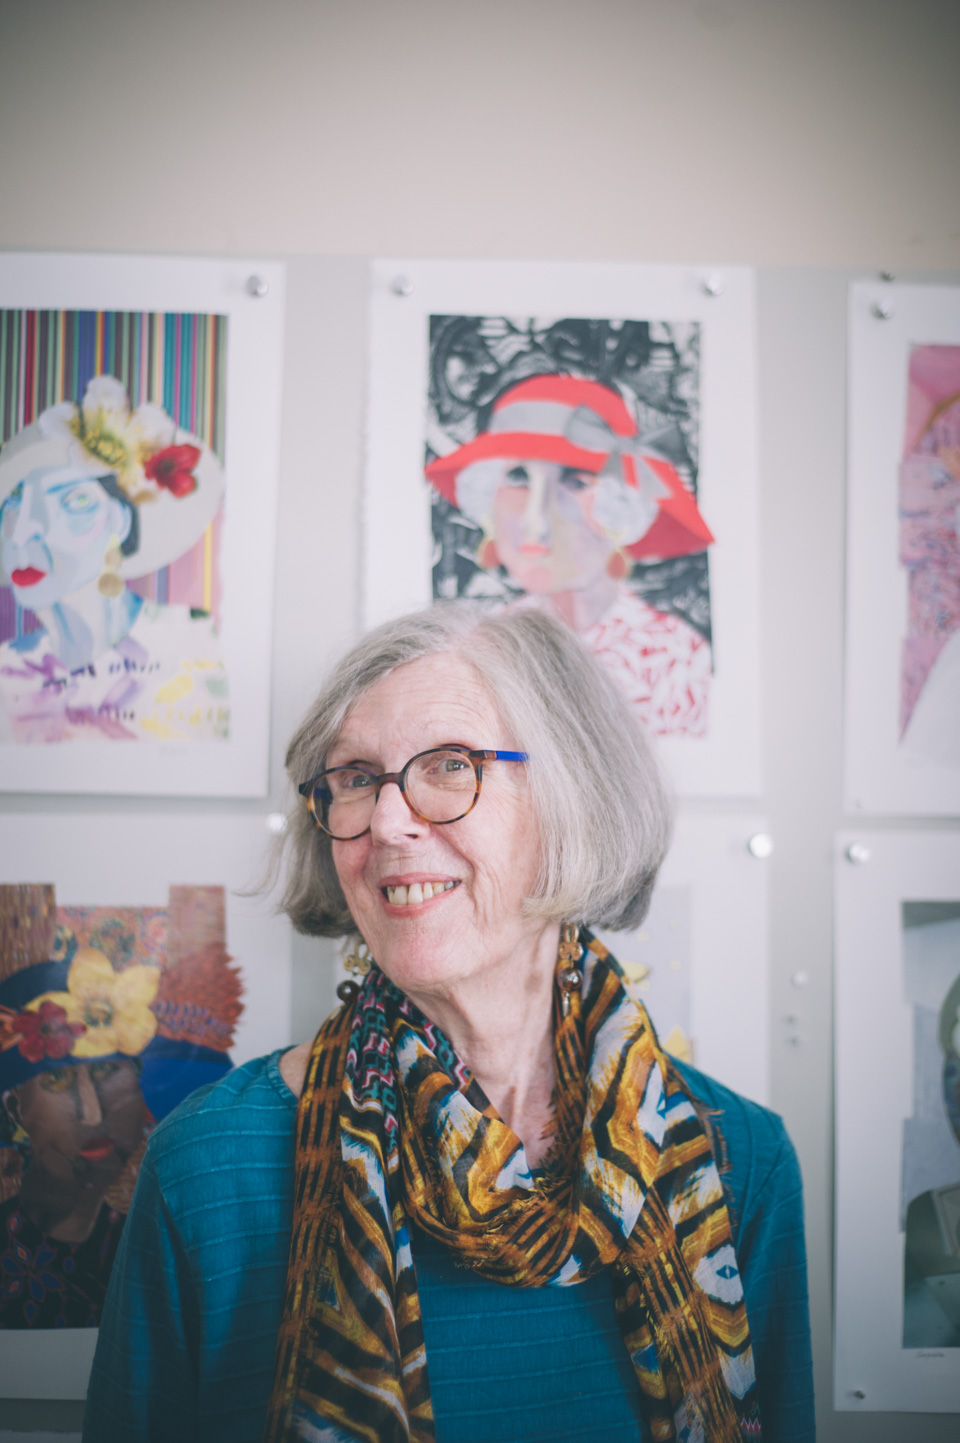 A photograph of Ann Stewart Anderson. Photo by Sarah Katherine Davis Photography for LVA